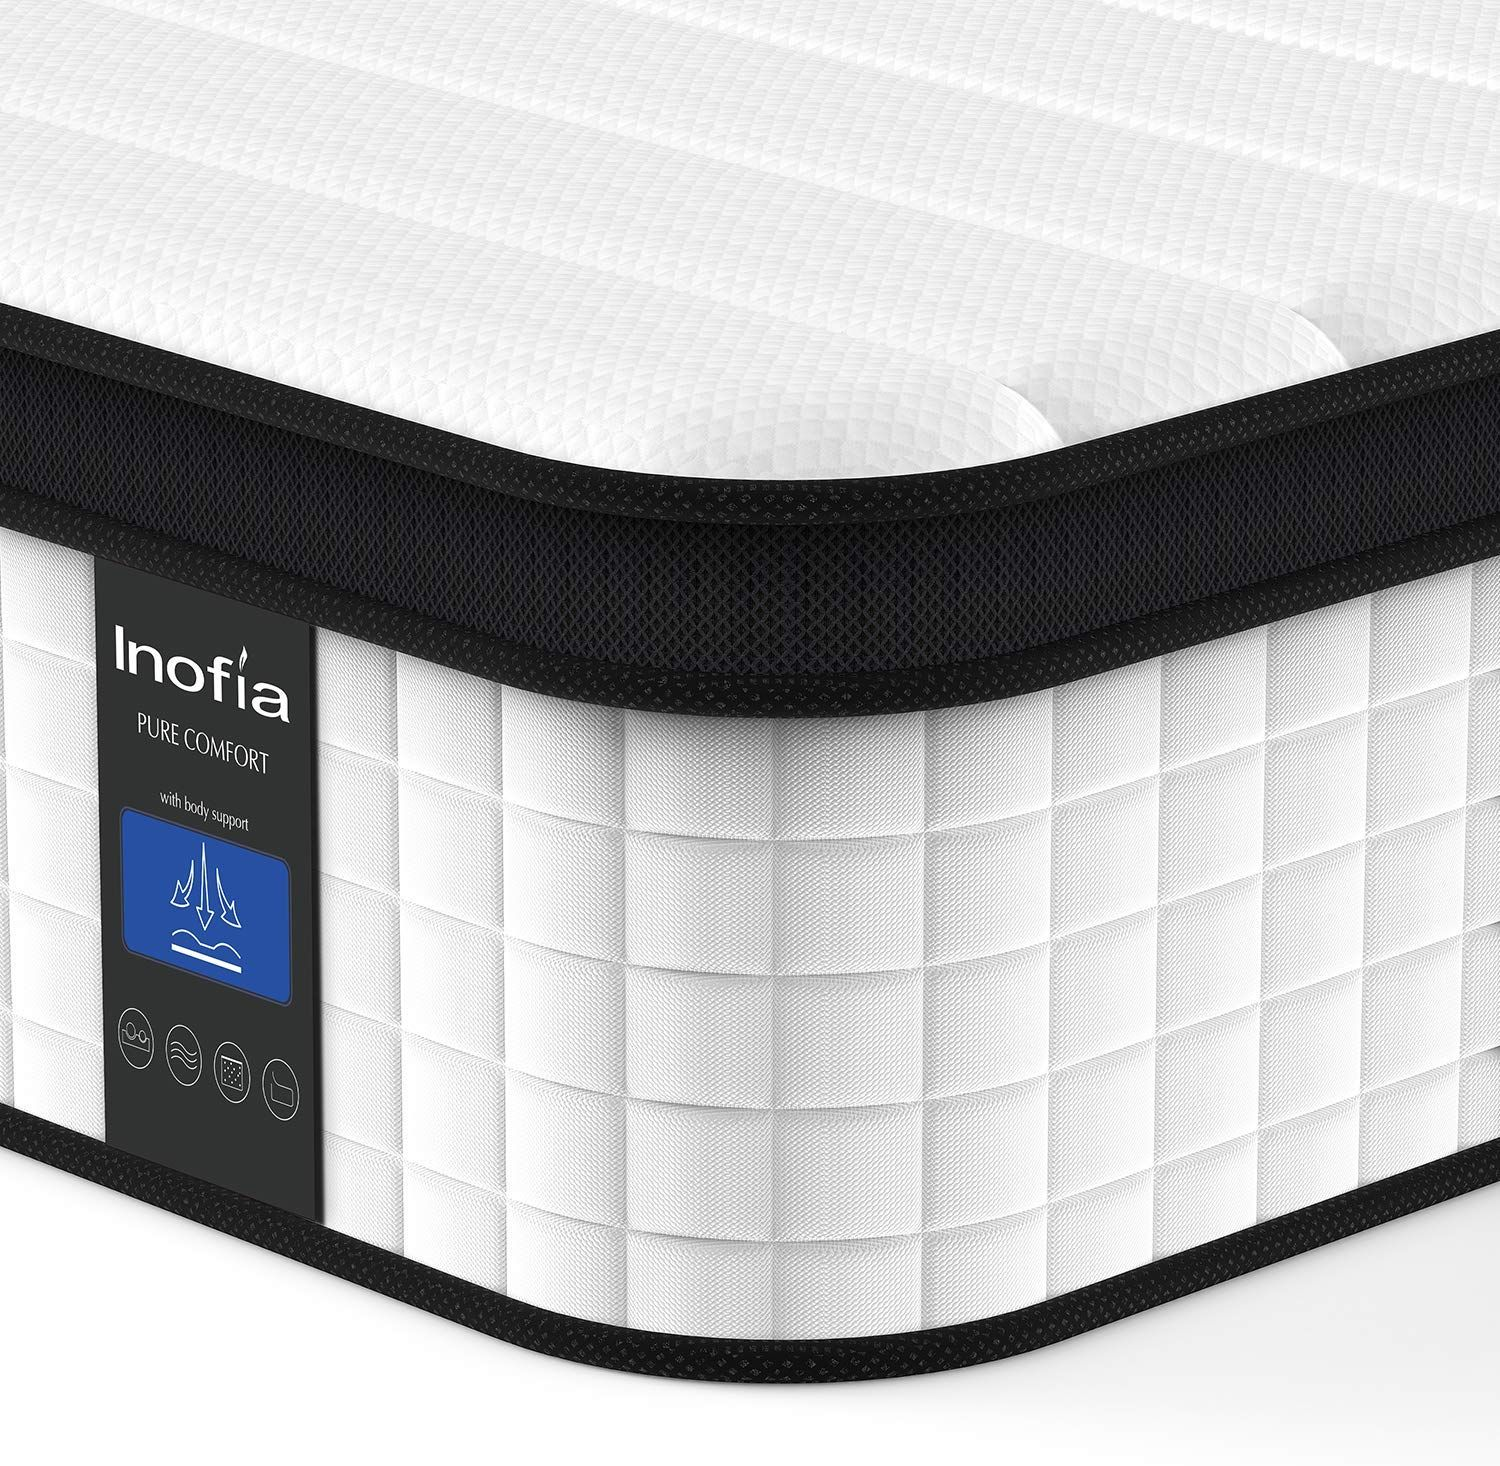 Inofia Twin XL Mattress, 12 Inch Hybrid Innerspring Single